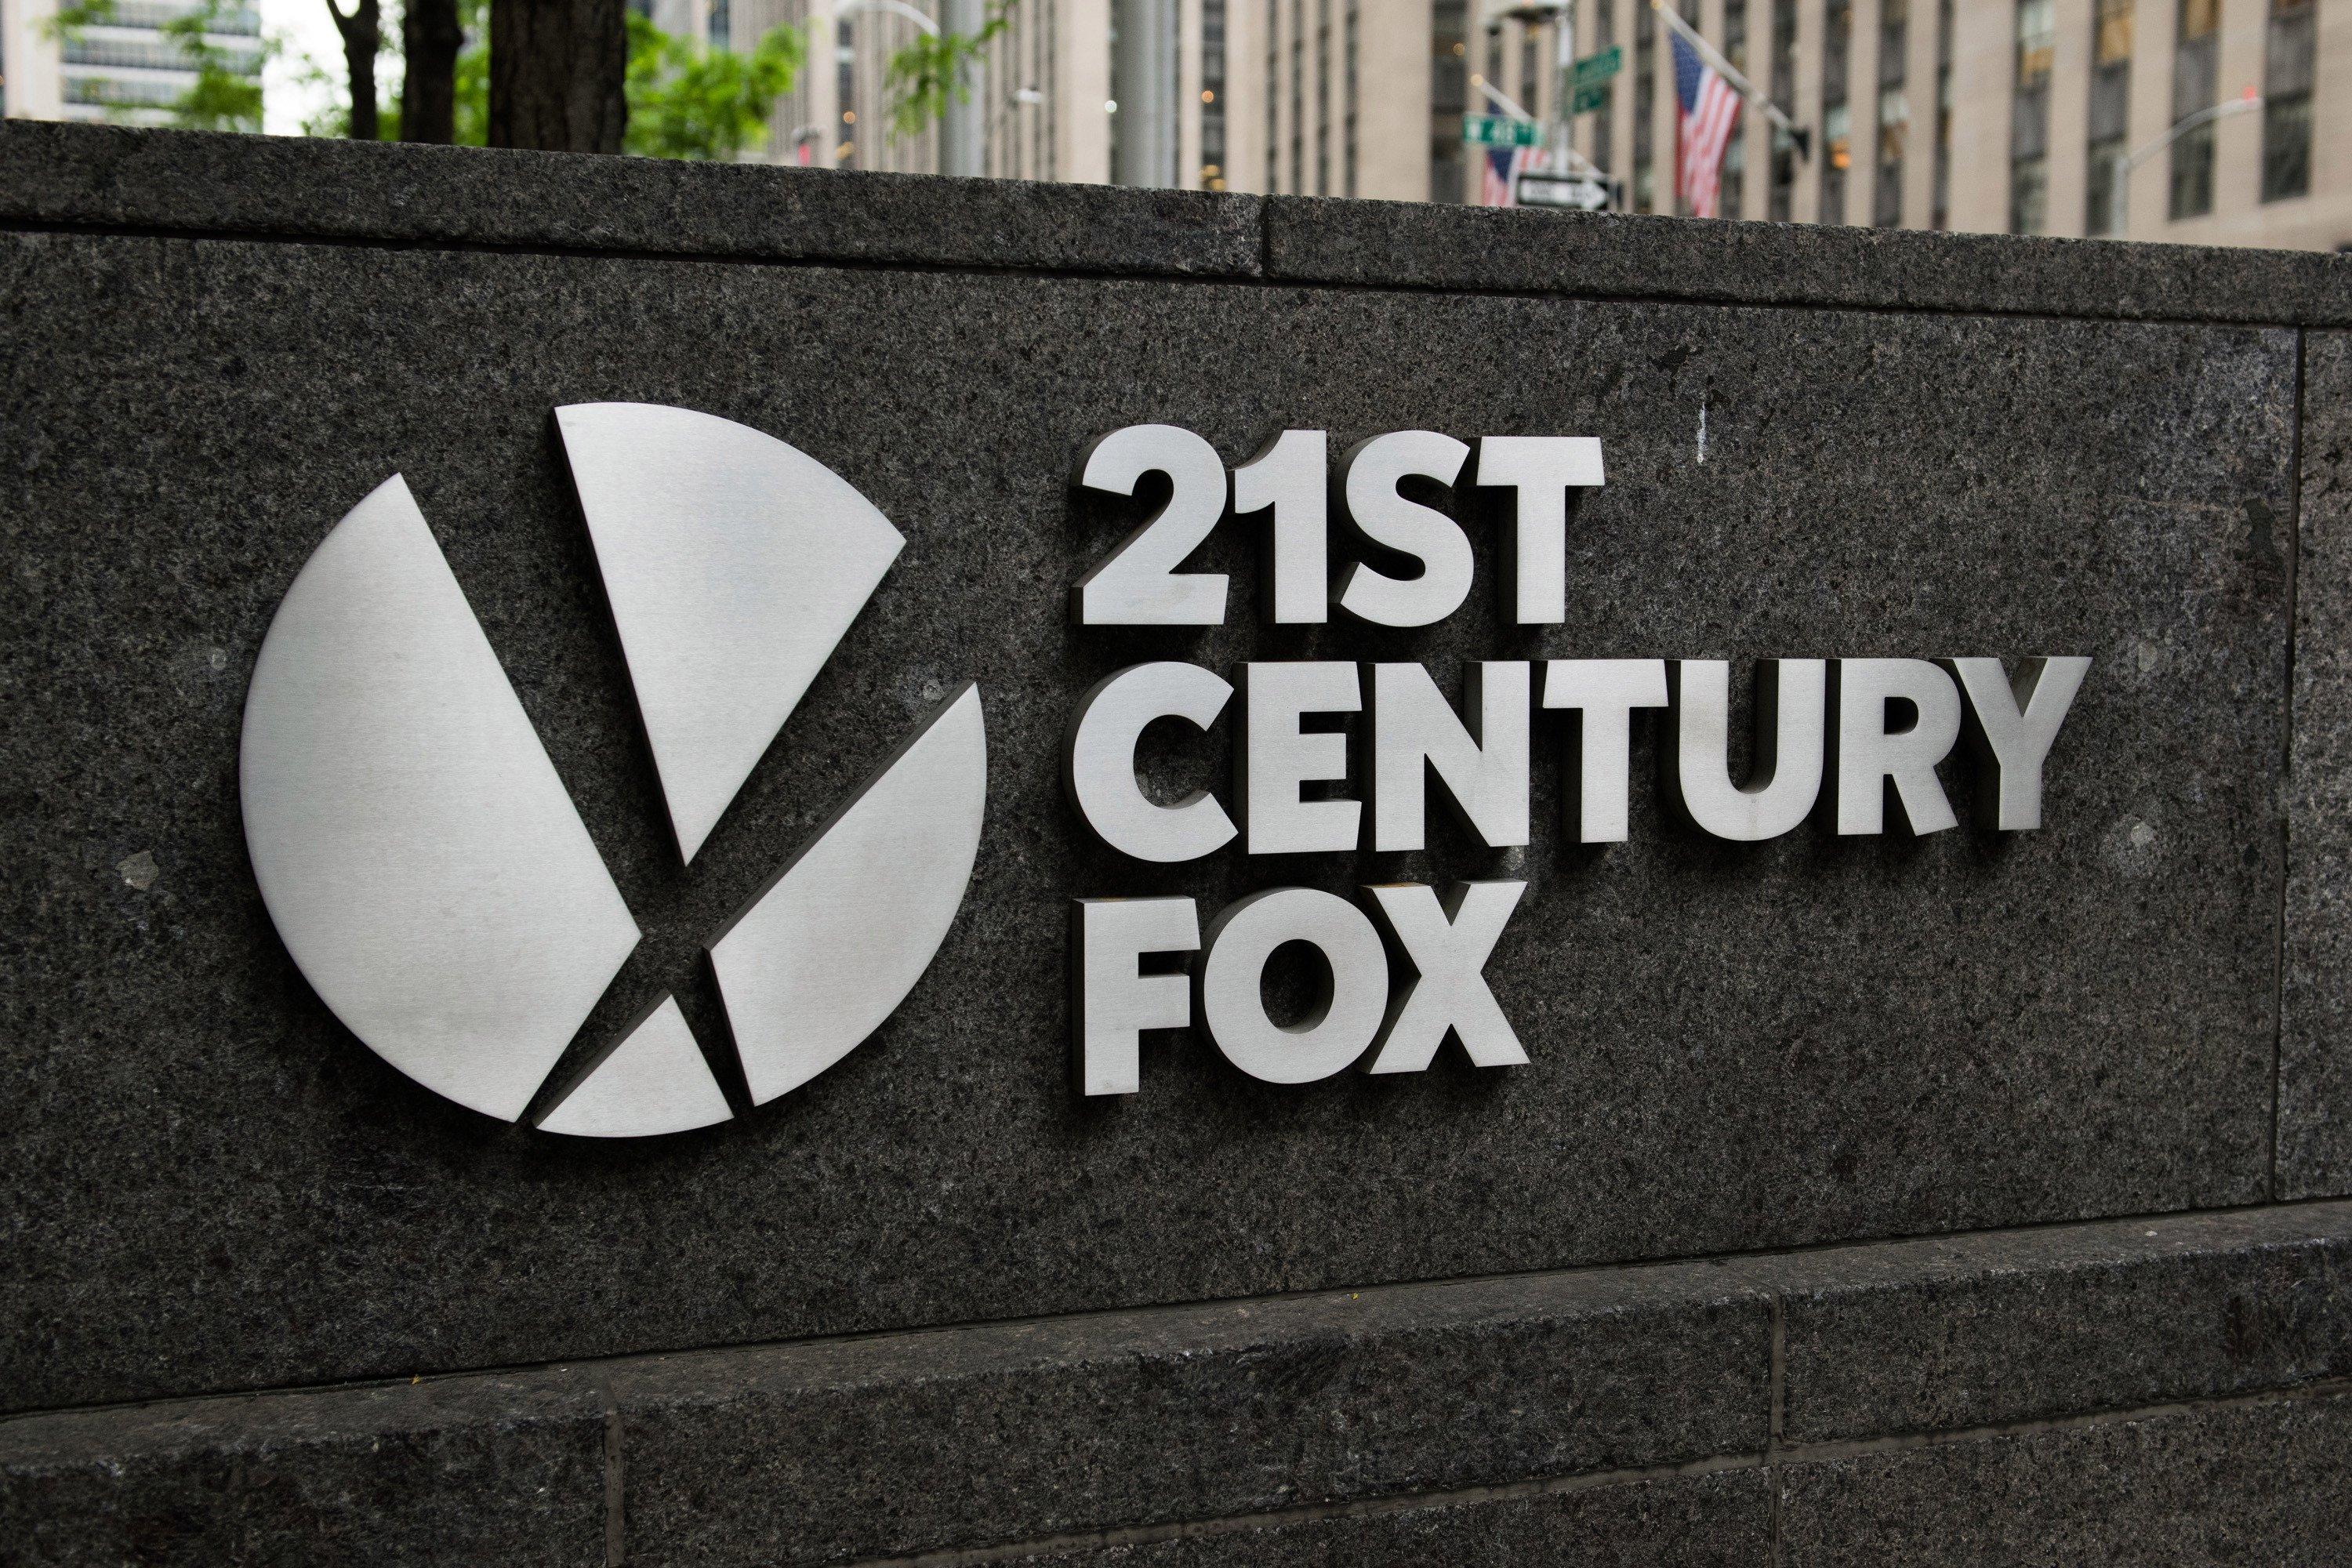 UK minister allows 21st Century Fox takeover of Sky